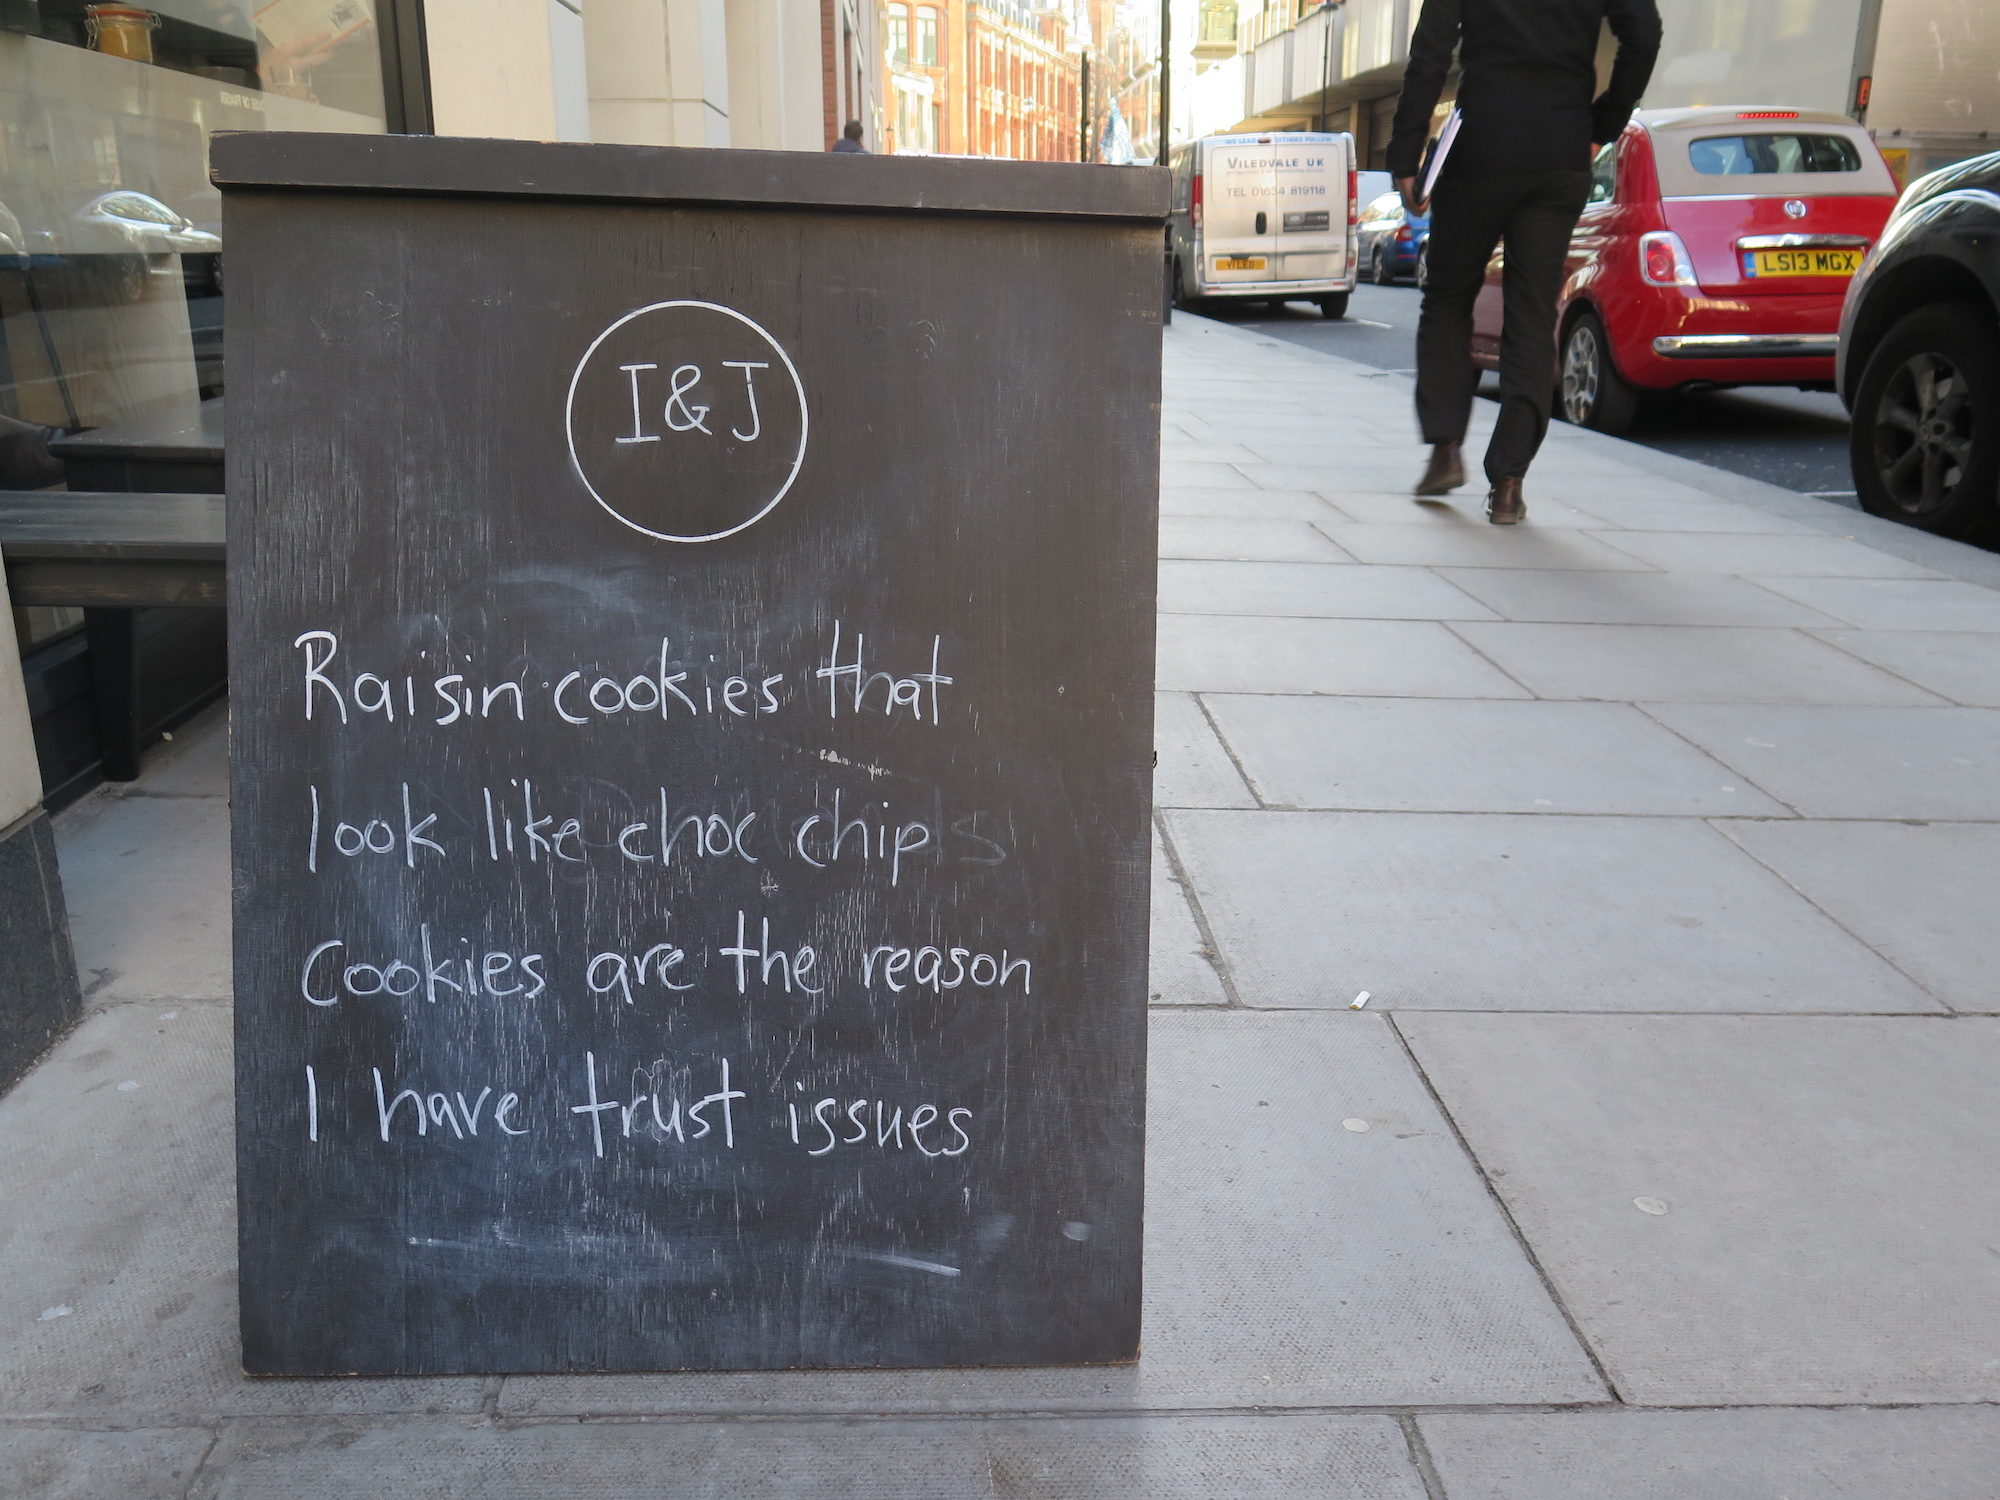 Paris or London for humor? We'd say London for its funny coffee shop street signs.